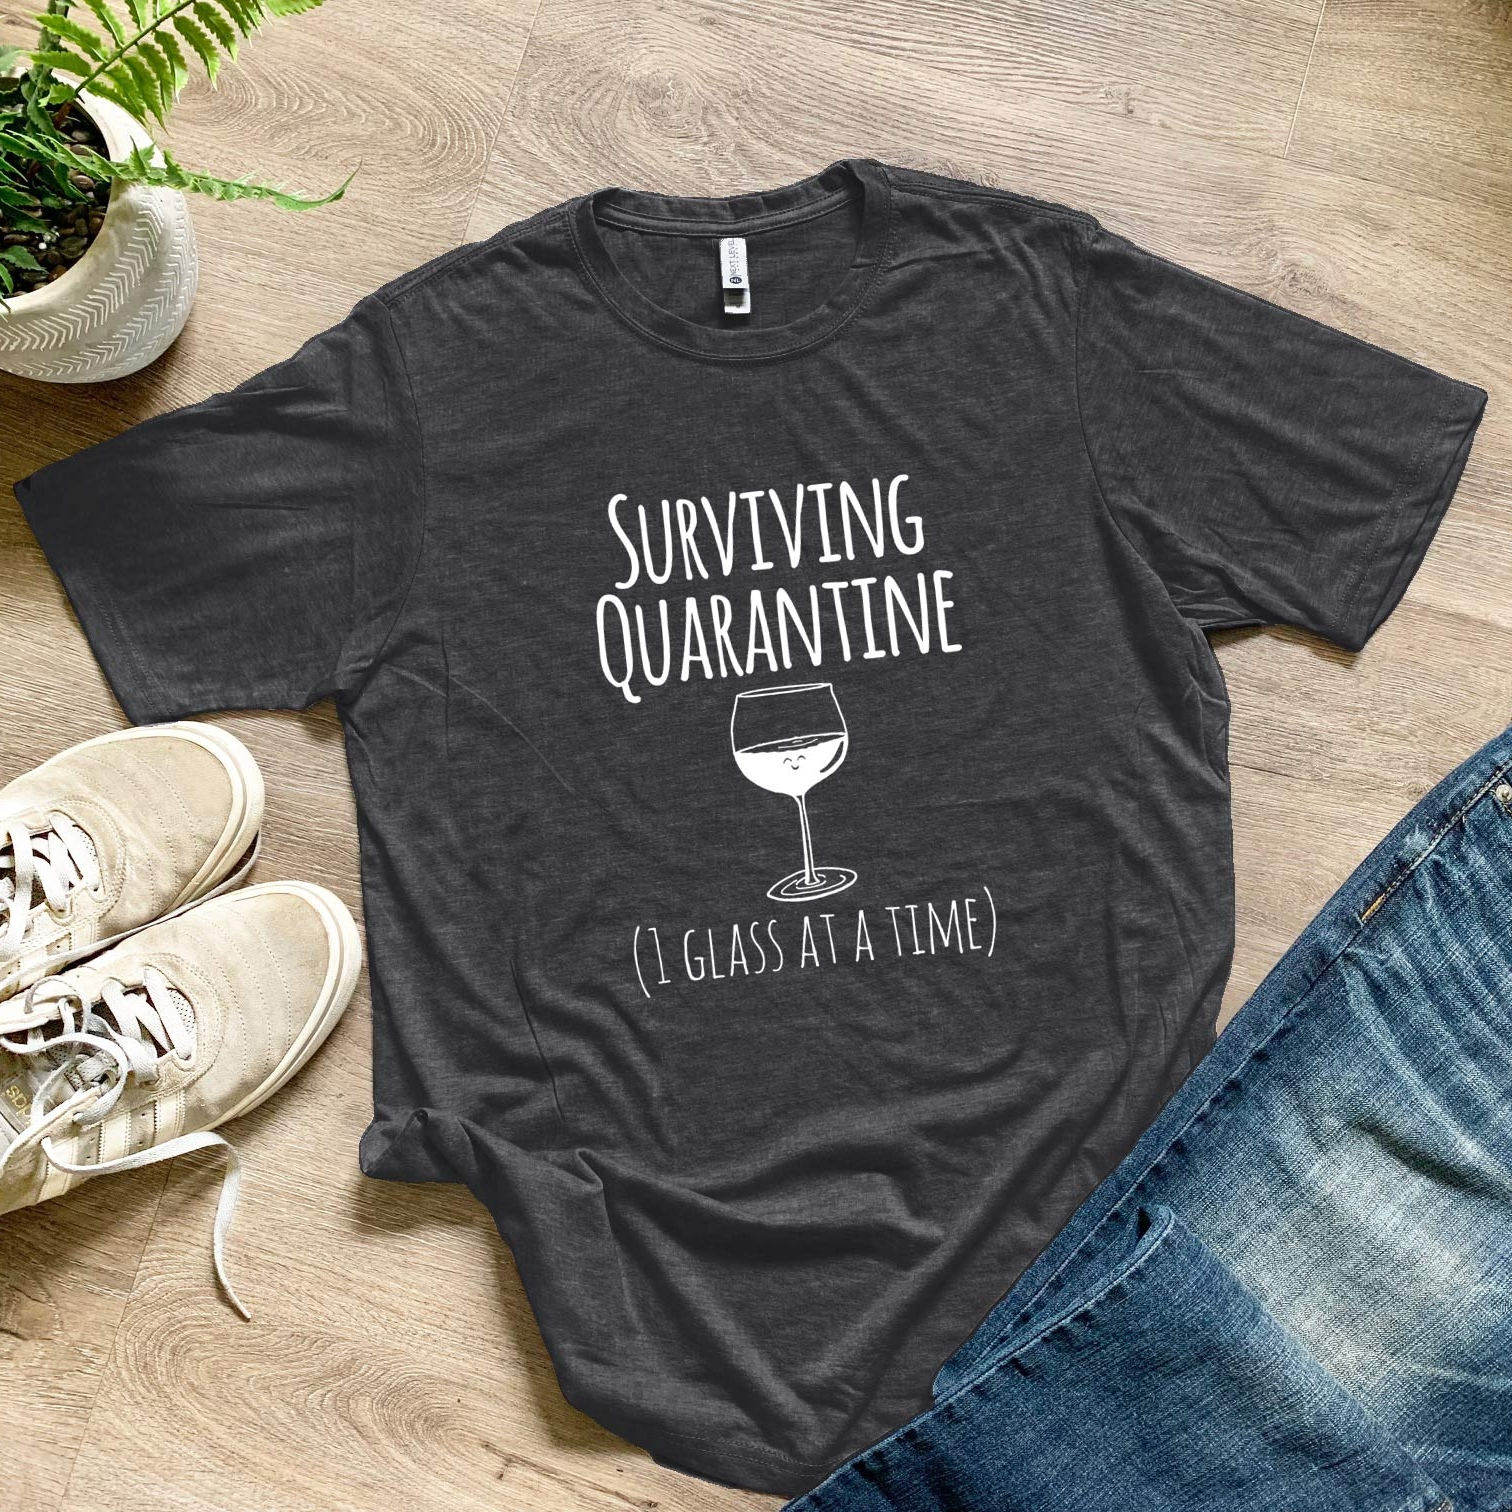 Product Image for Surviving Quarantine (1 Glass At A Time) - Men's Tee